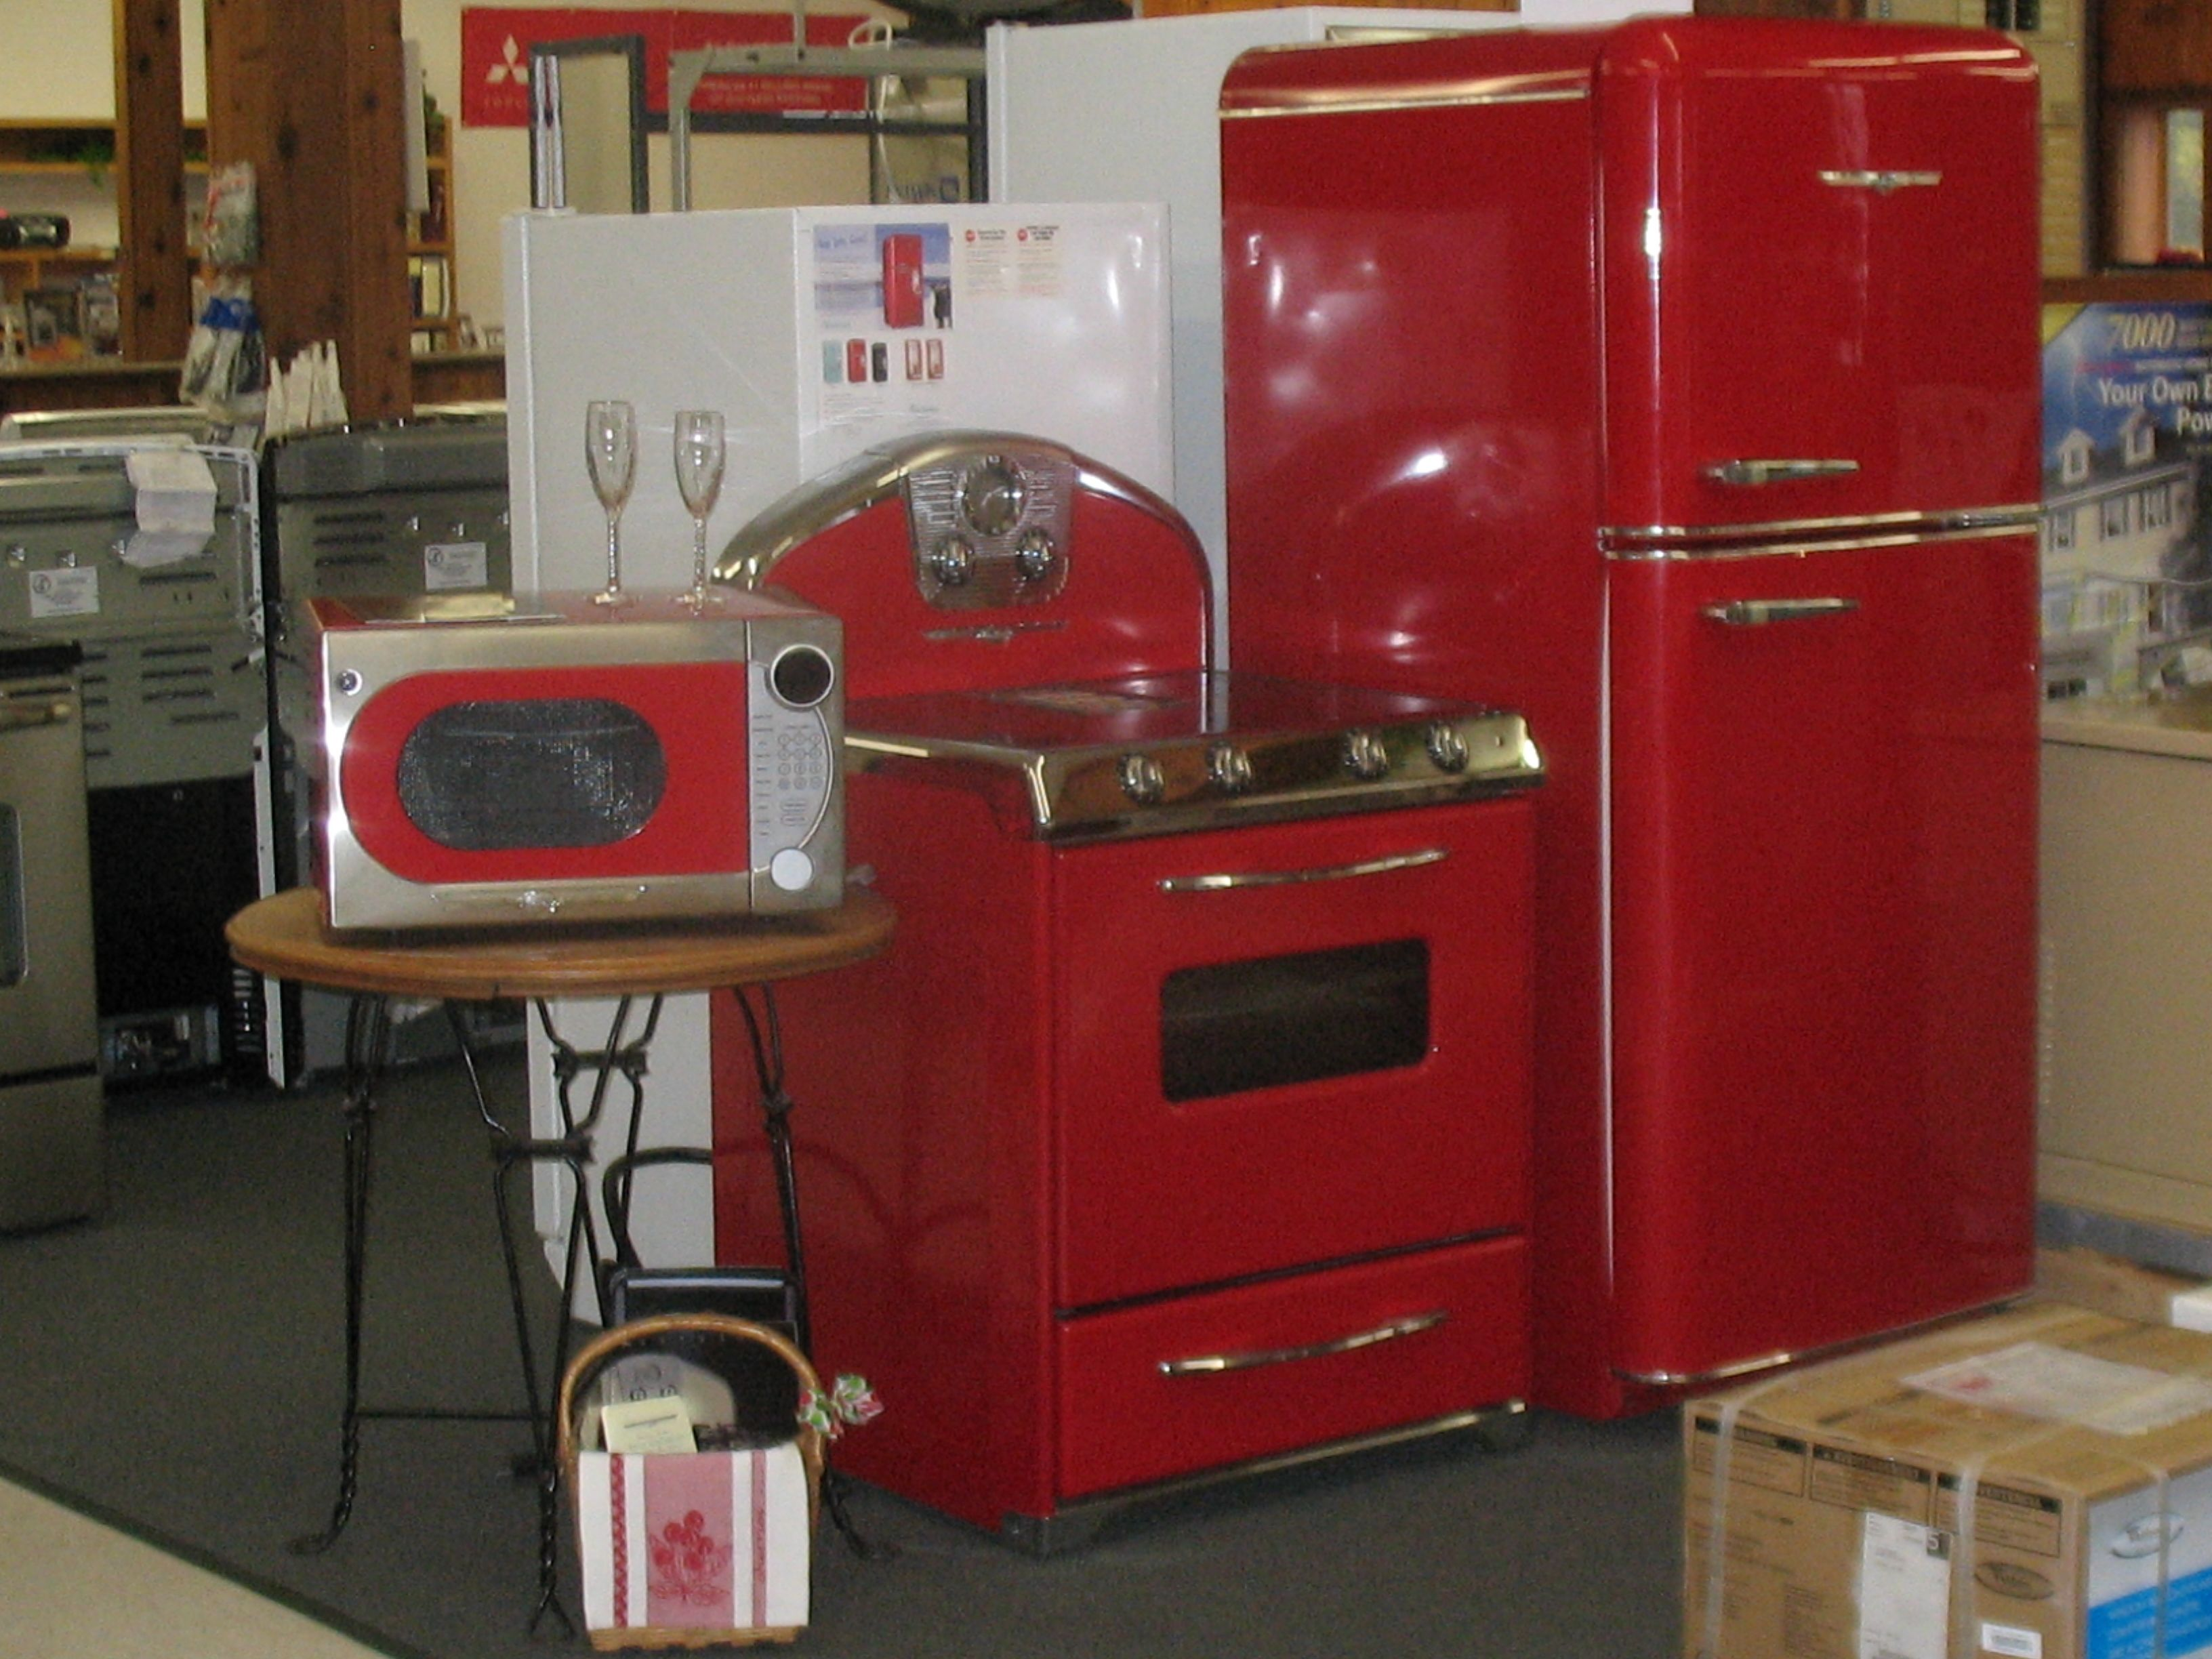 Retro Style Kitchen Retro 1950s Styled Kitchen Appliances With All The Modern